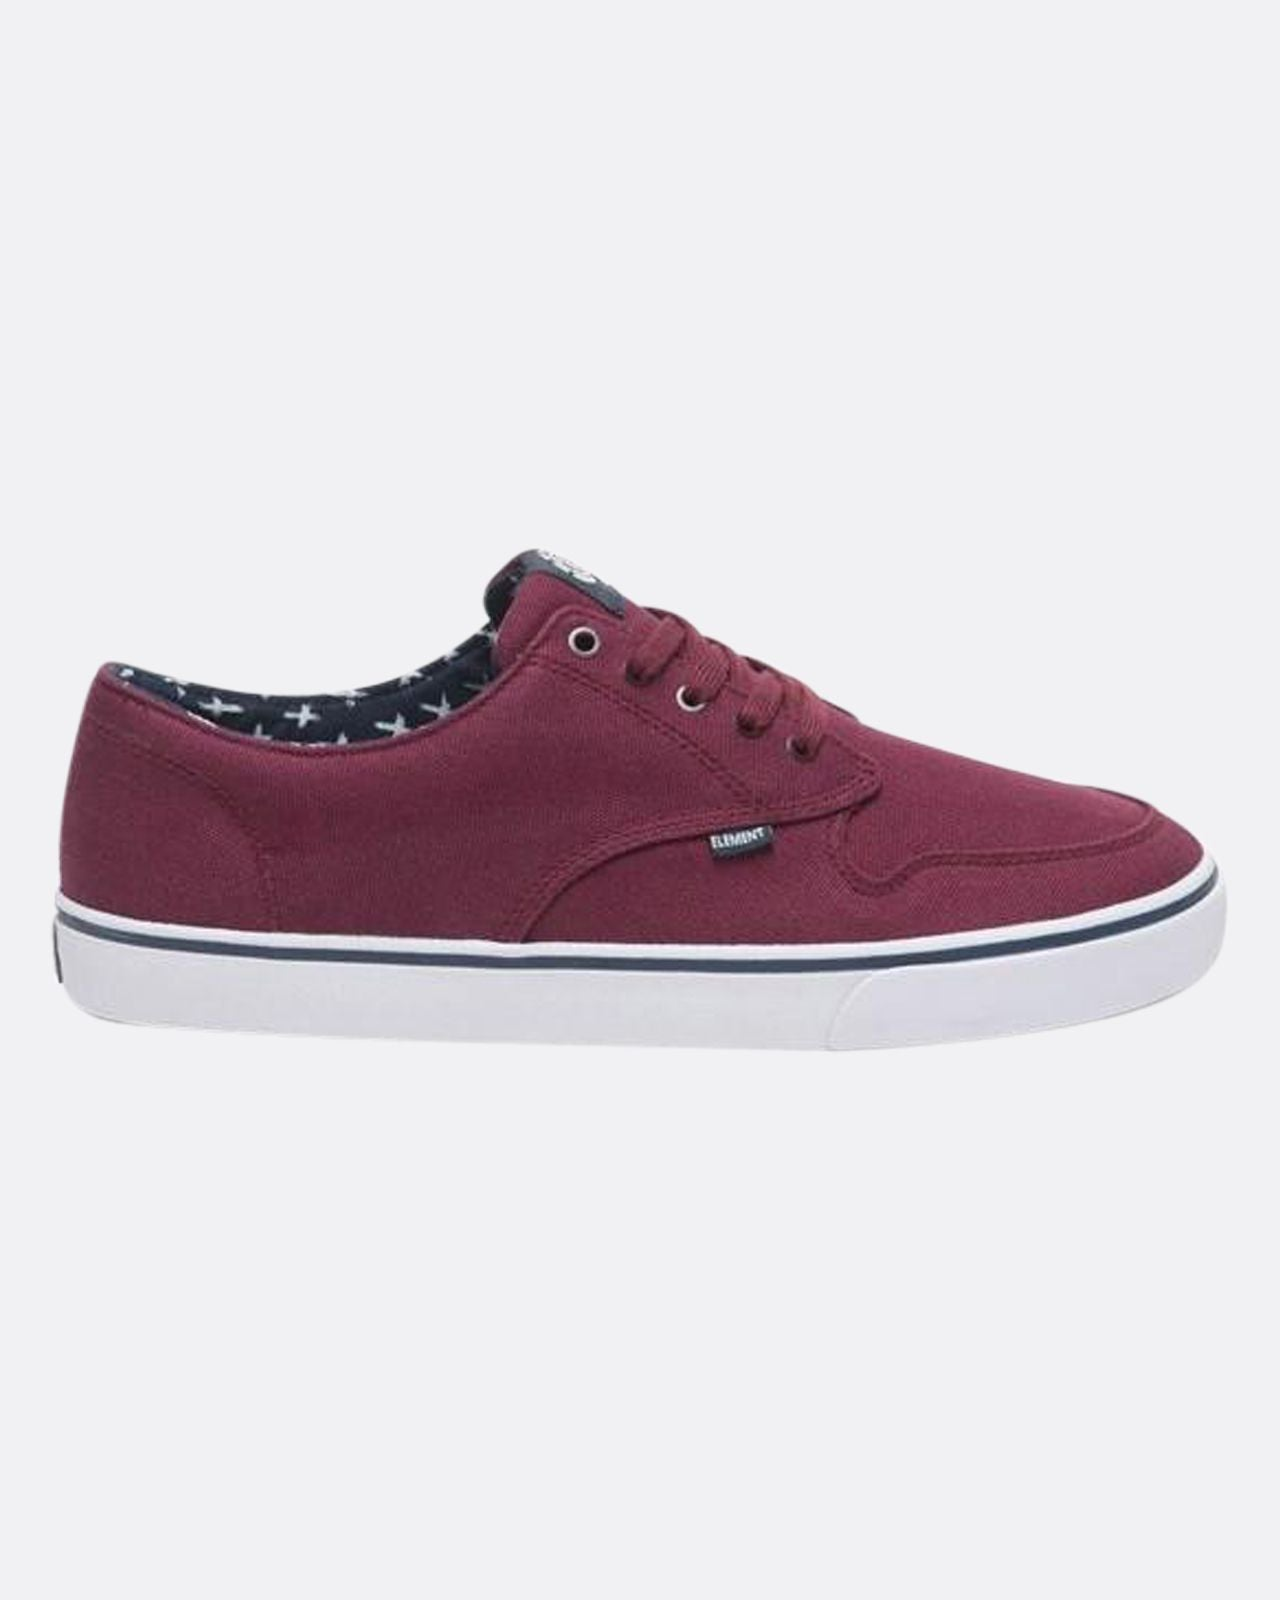 Topaz C3 Skate Shoes